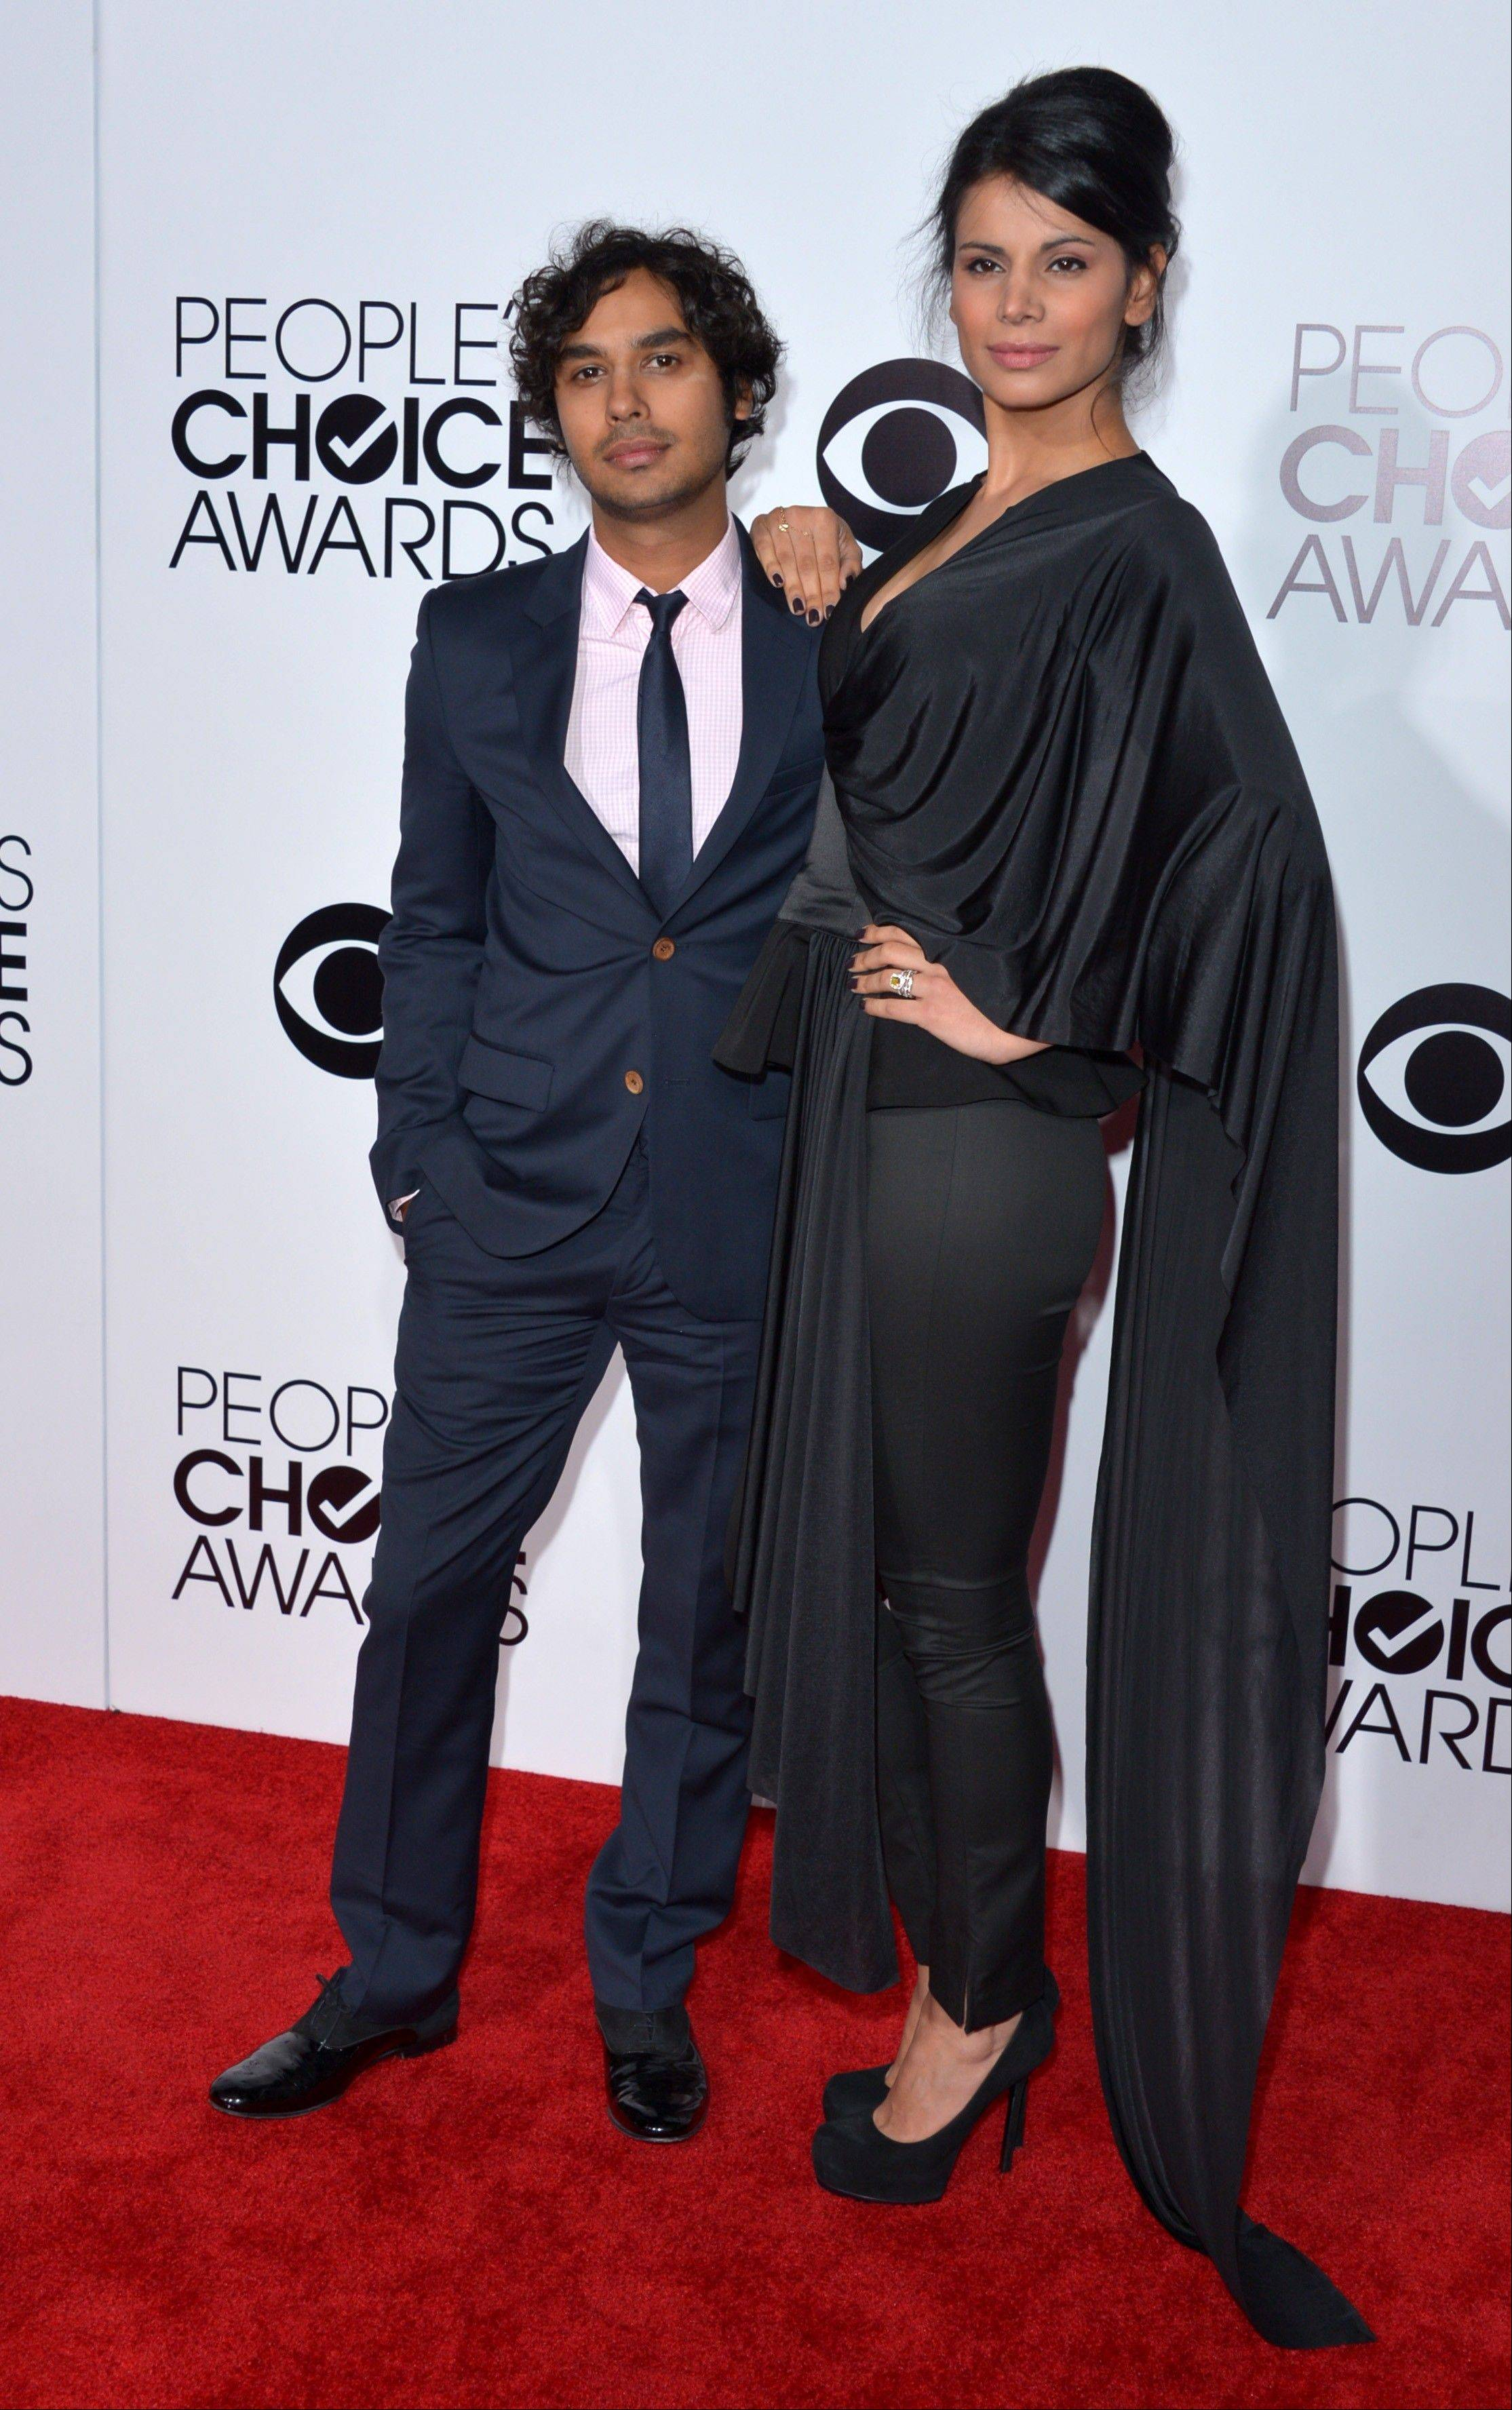 Associated PressKunal Nayyar, left, and Neha Kapur arrive at the 40th annual People's Choice Awards at Nokia Theatre L.A. Live on Wednesday, Jan. 8, 2014, in Los Angeles.